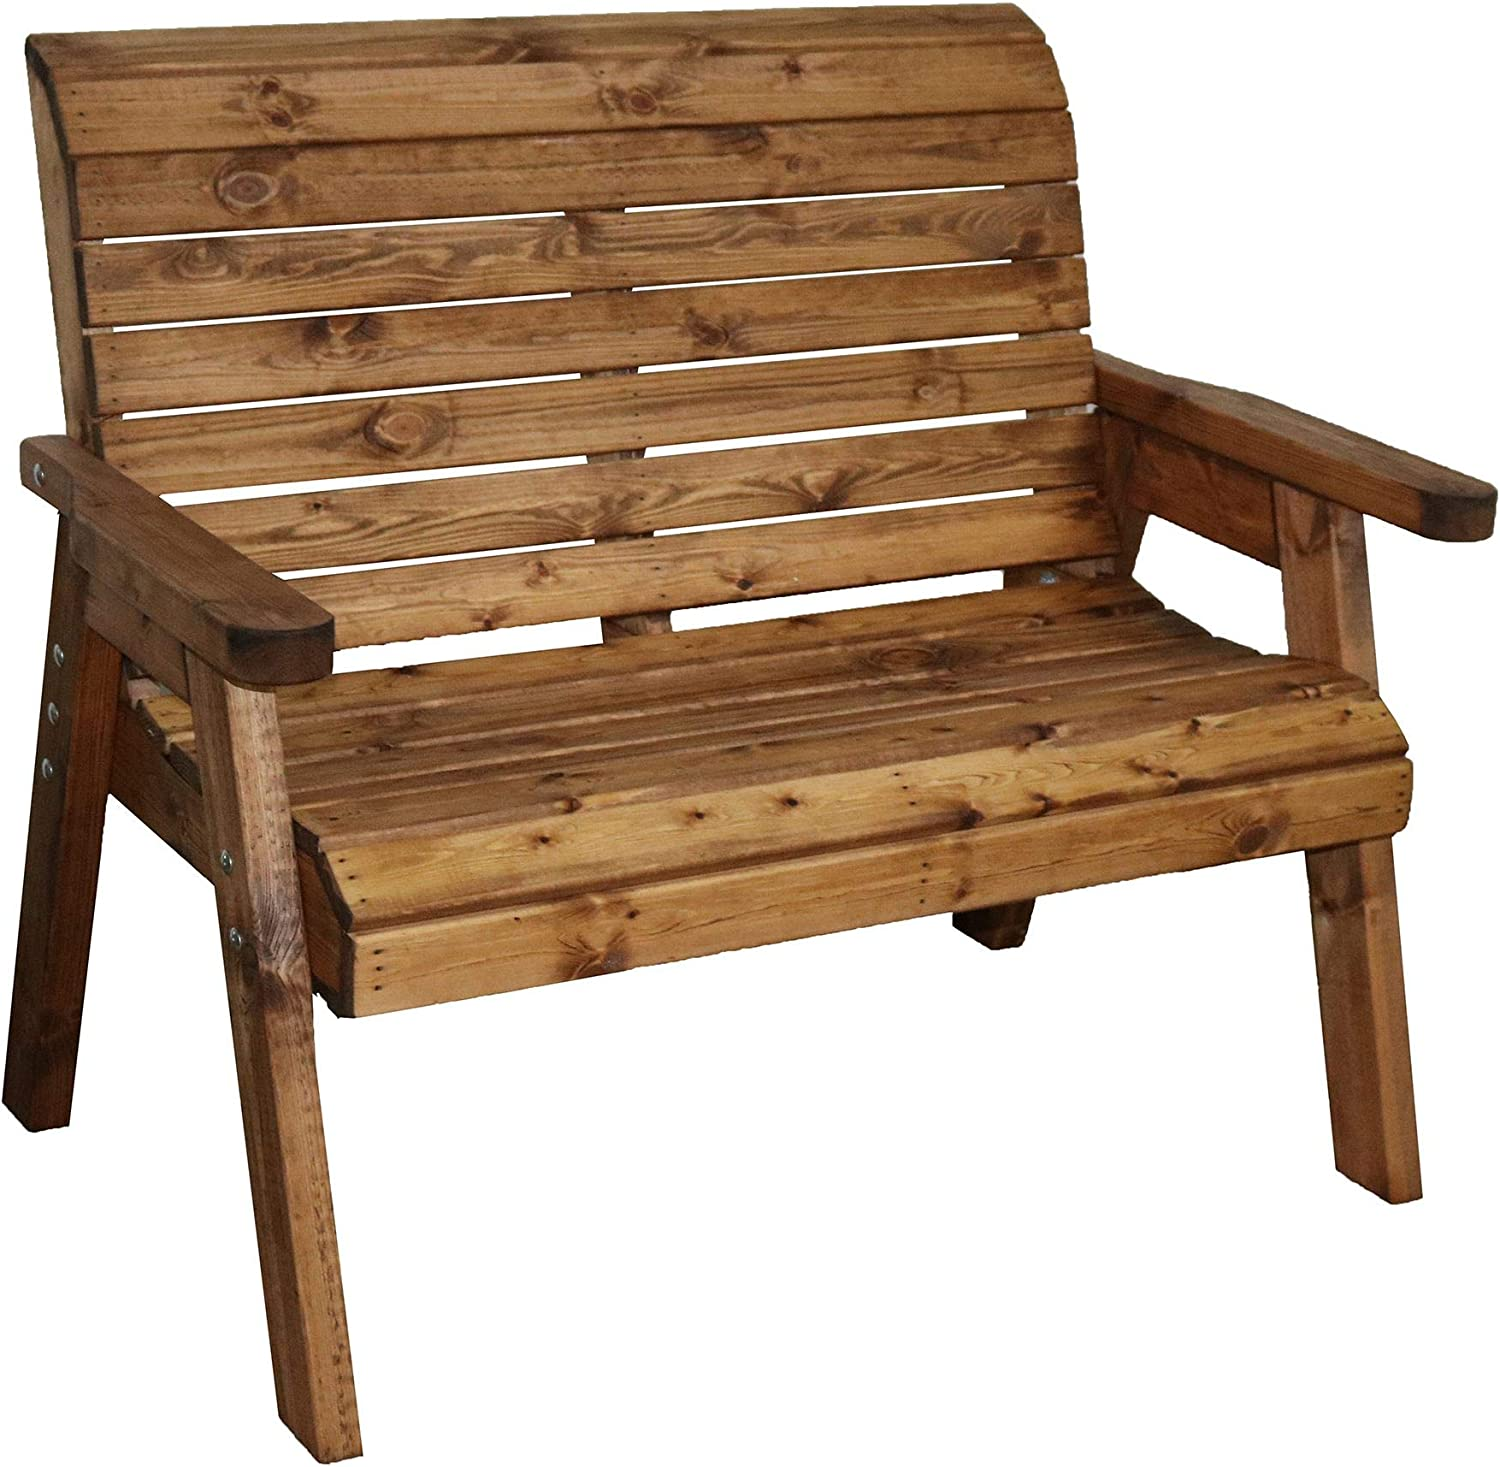 Garden Furniture 10 Seater High Back Bench Wooden Wood Supplied